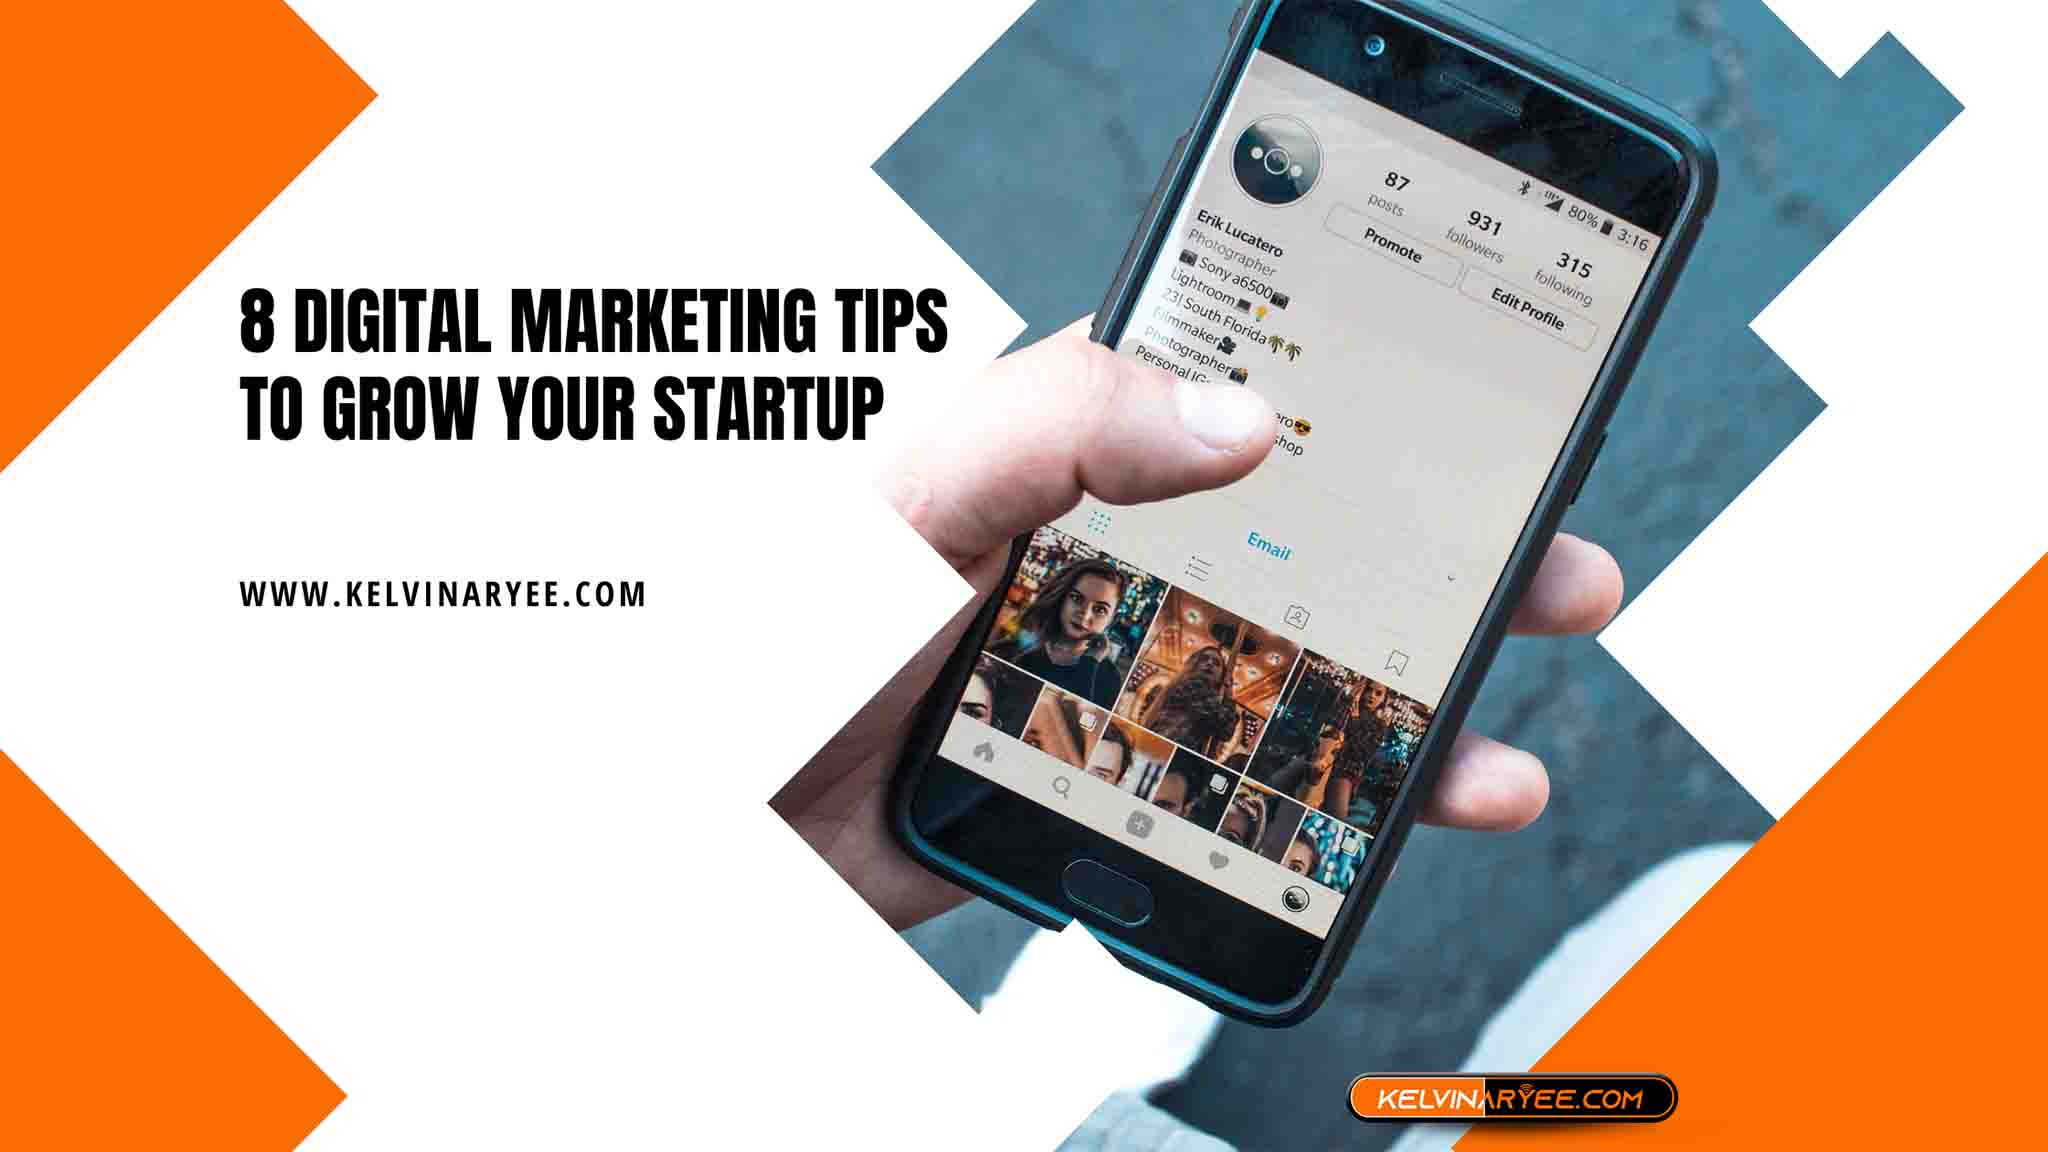 8 Digital Marketing Tips To Grow Your Startup